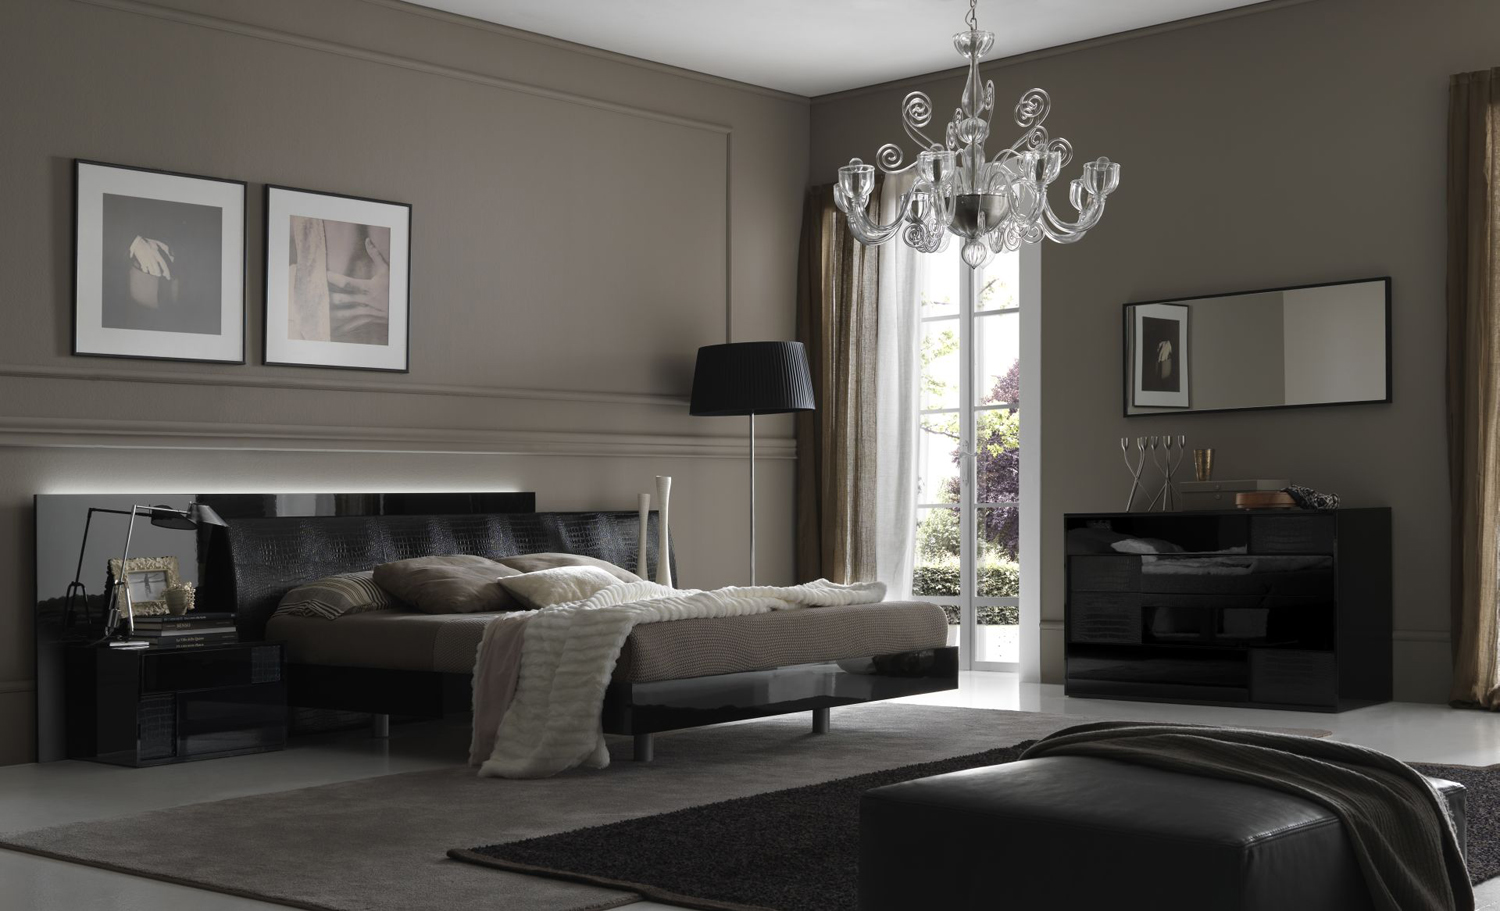 Bedroom decorating ideas from evinco for Modern vintage bedroom designs